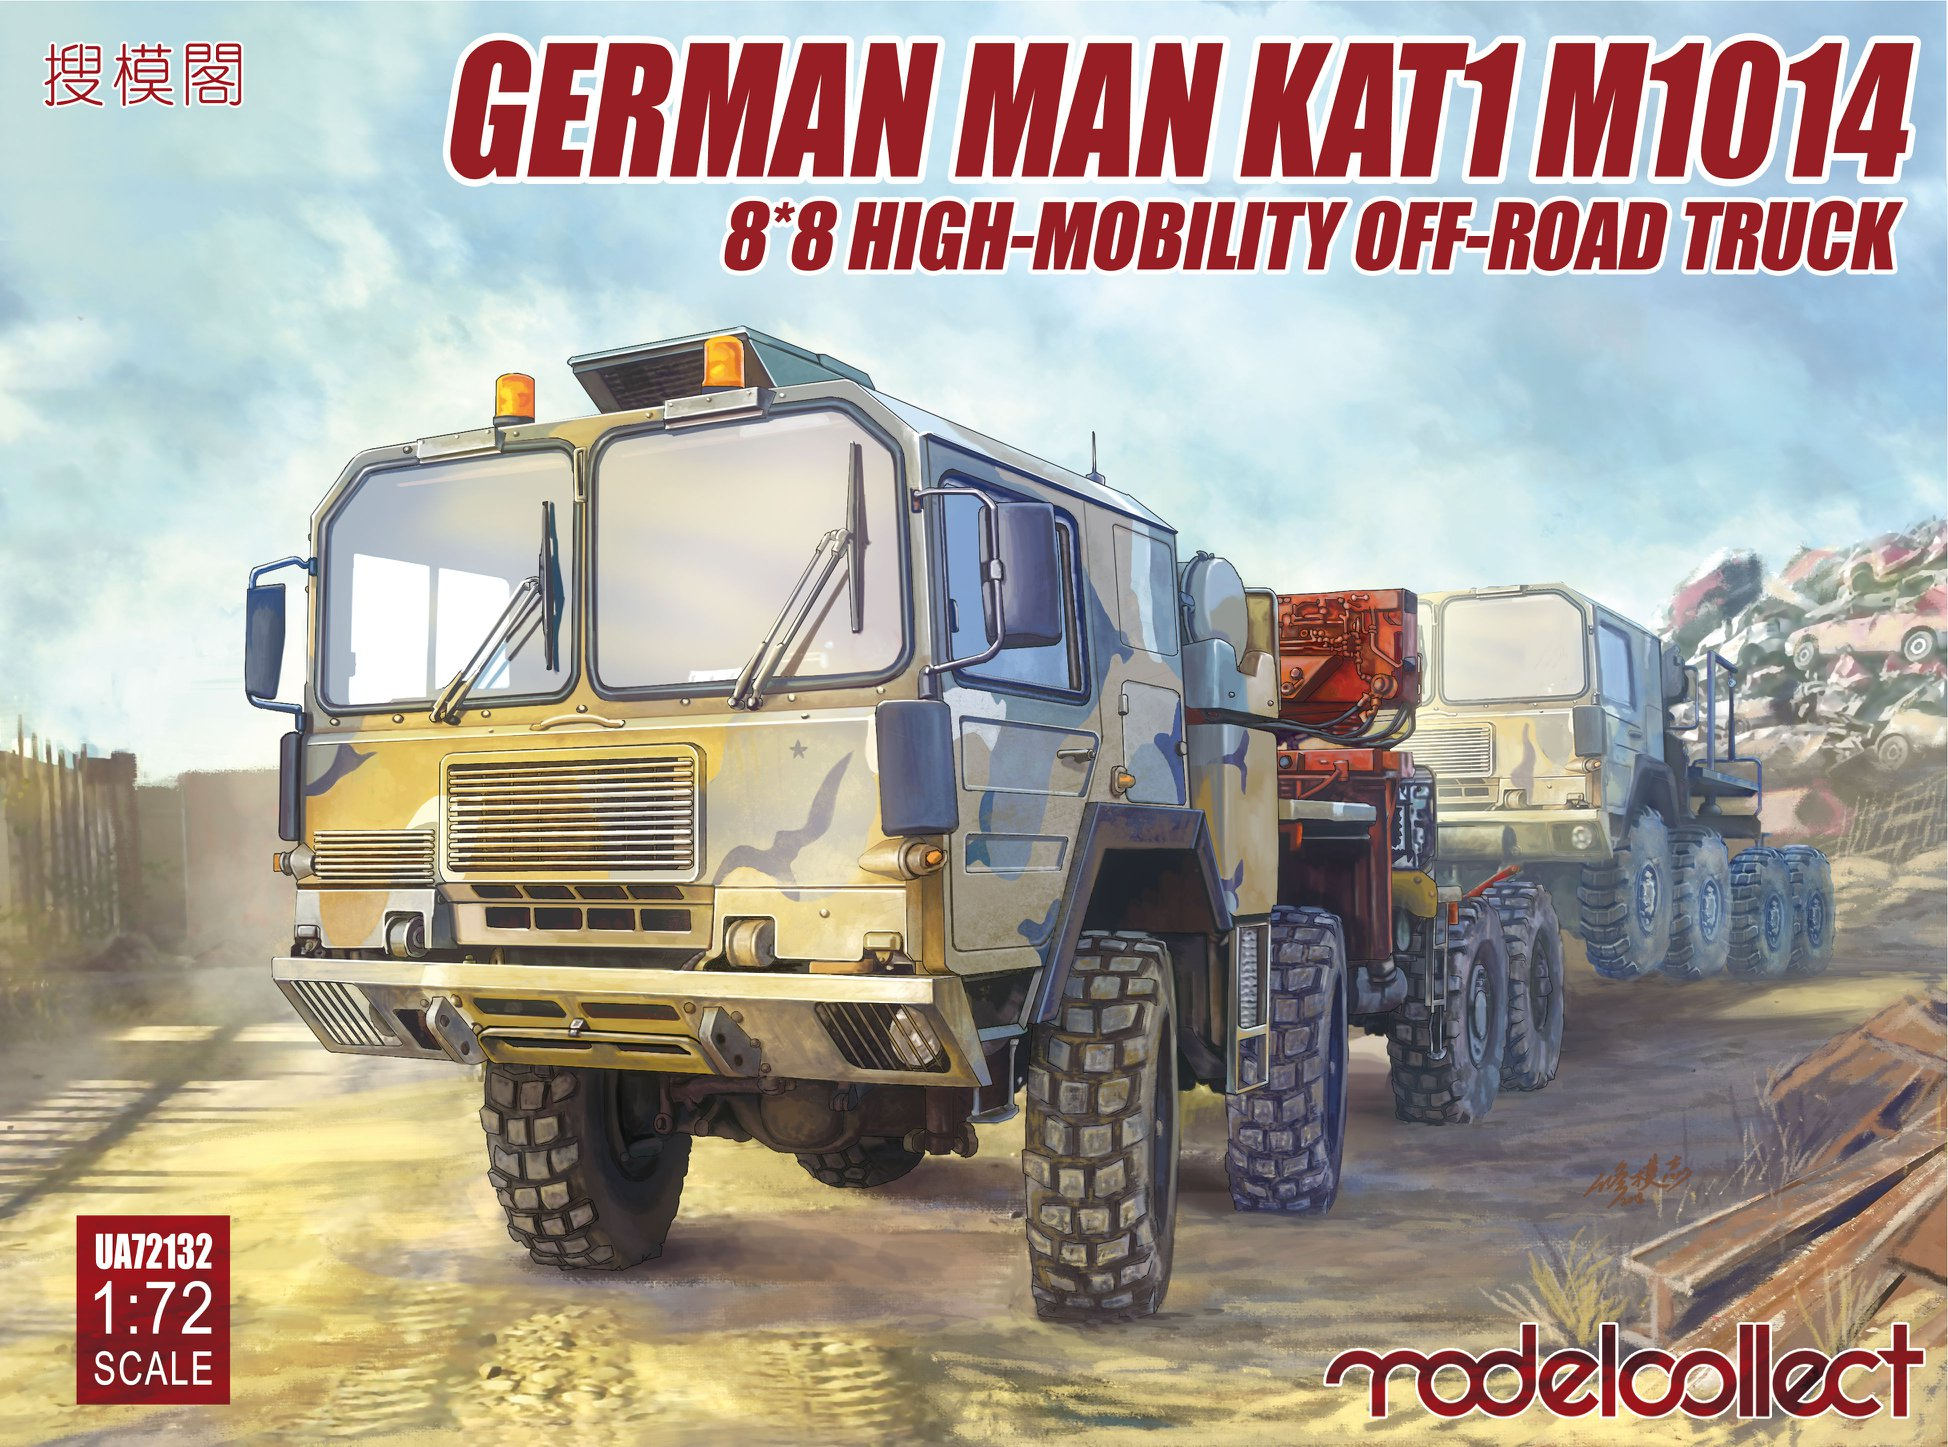 German MAN KAT1 M1014 8x8 HIGH-Mobility off-road truck